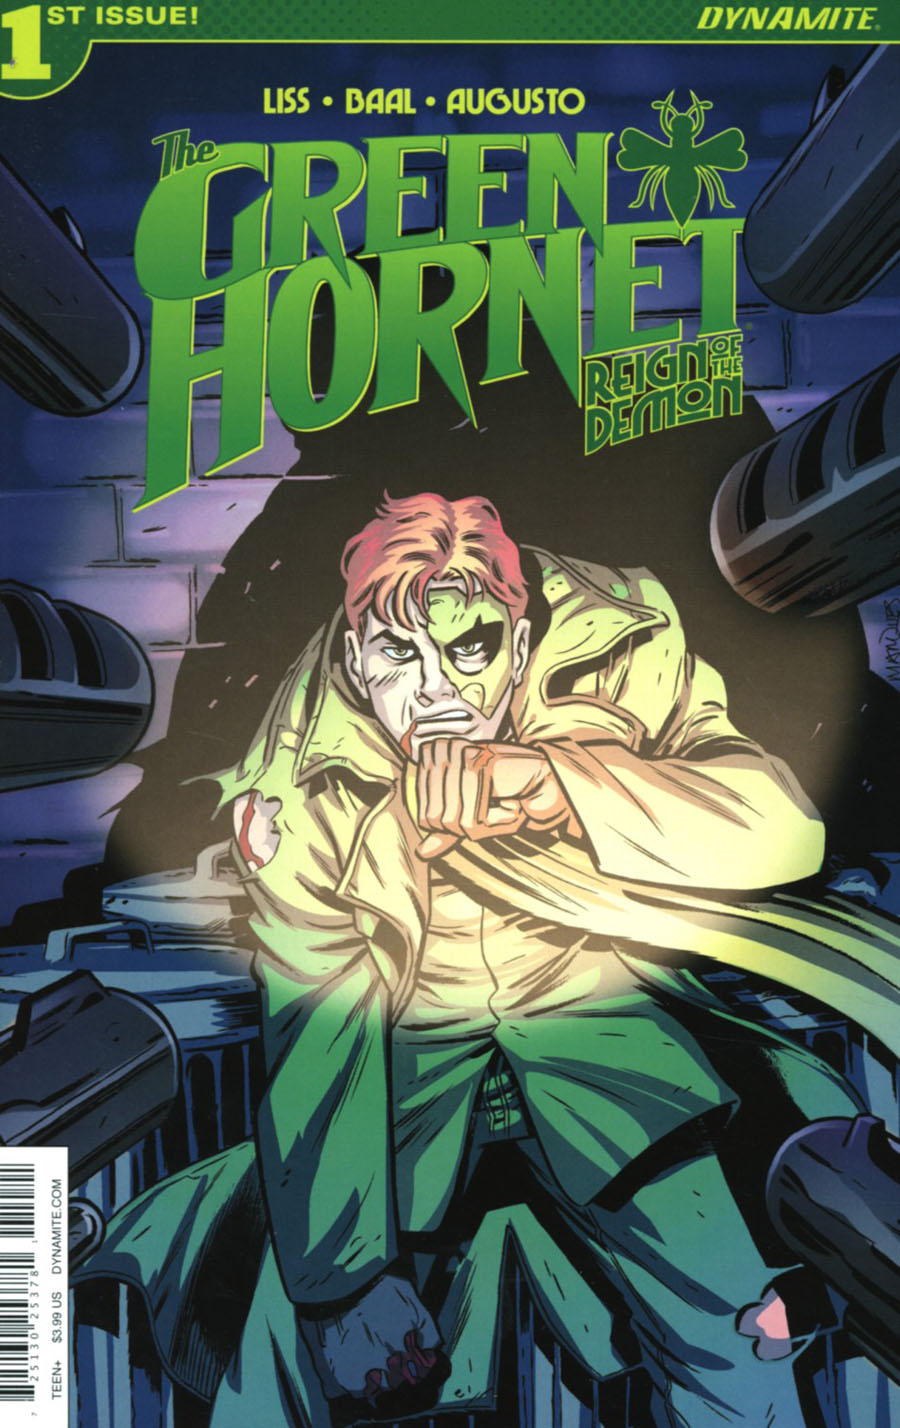 Green Hornet Reign Of The Demon #1 Cover B Variant Anthony Marques Cover